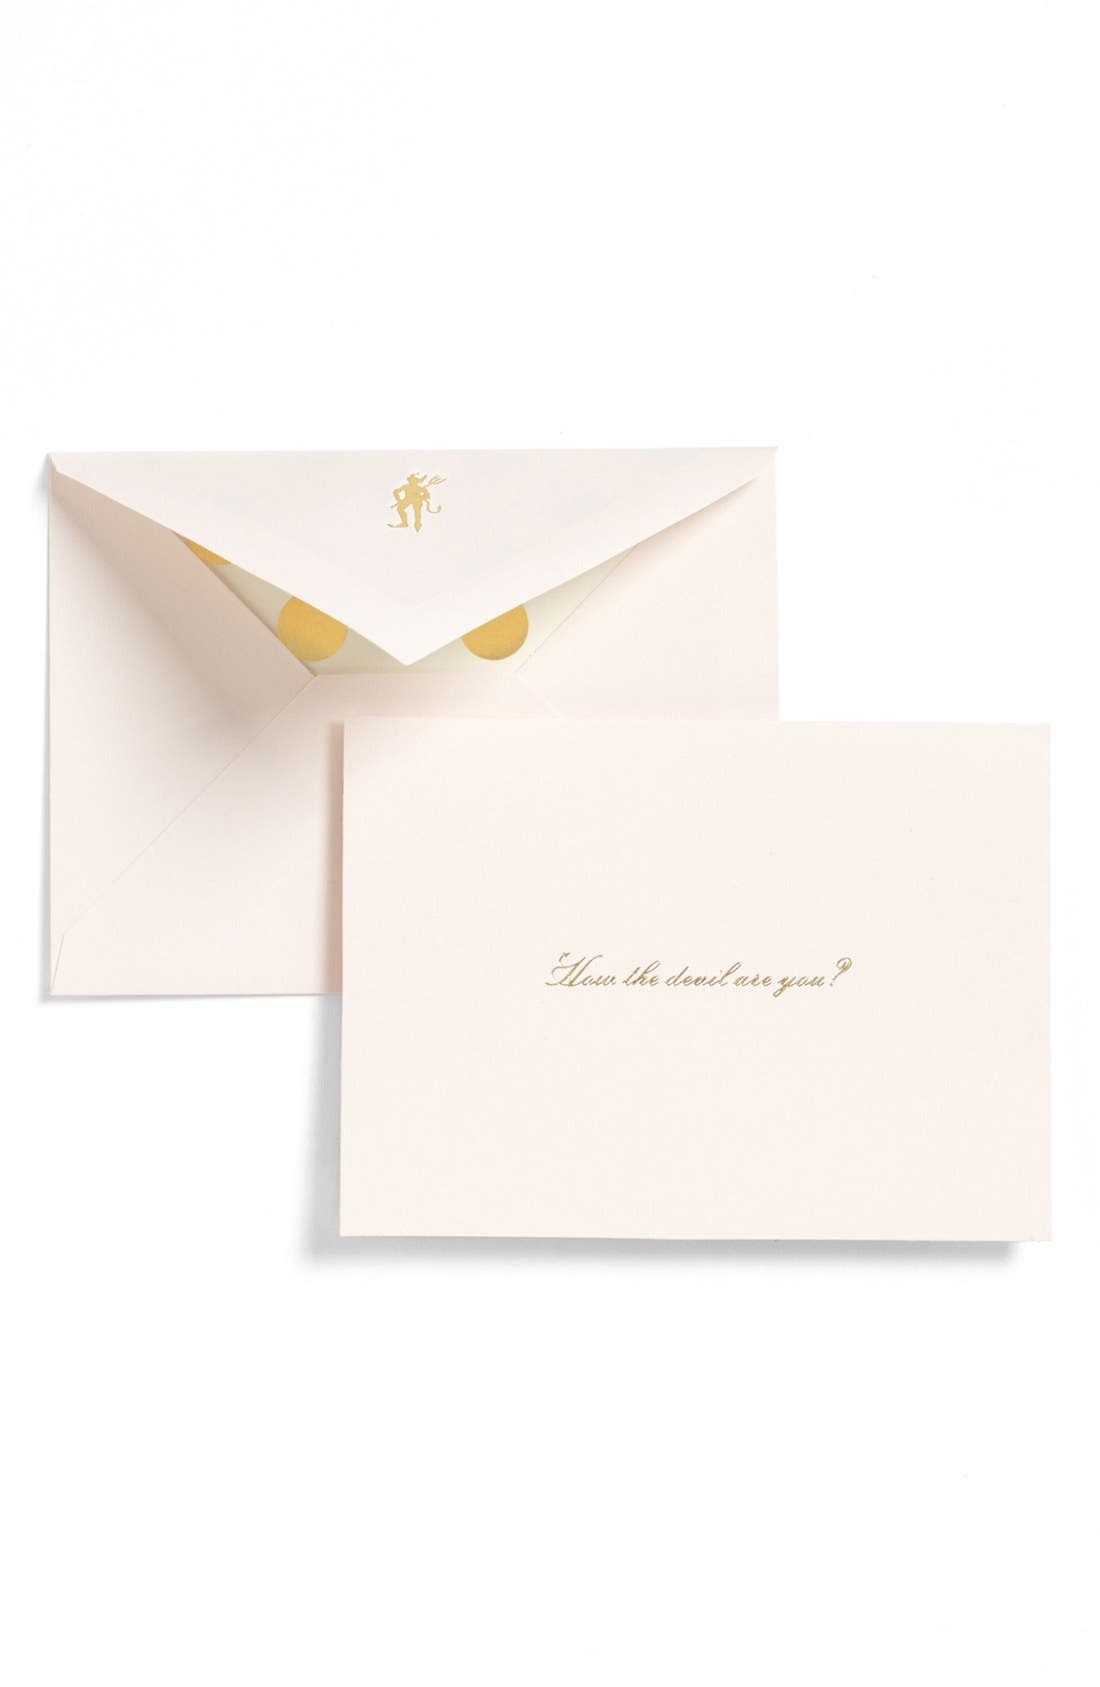 Alternate Image 1 Selected - kate spade new york 'how the devil are you?' note cards (set of 10)